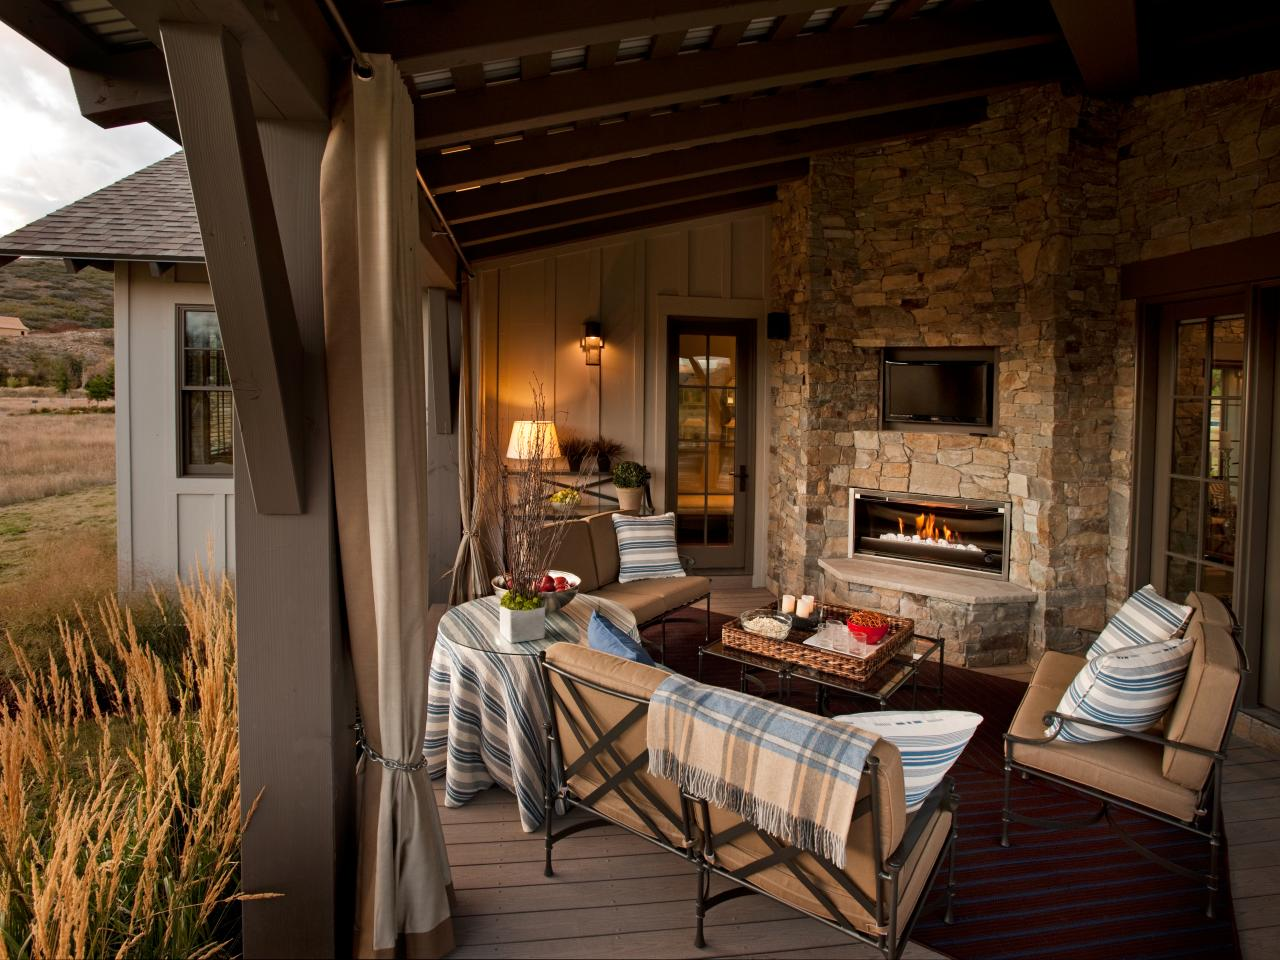 Hgtv dream home 2012 outdoor living room pictures and Outdoor living areas images